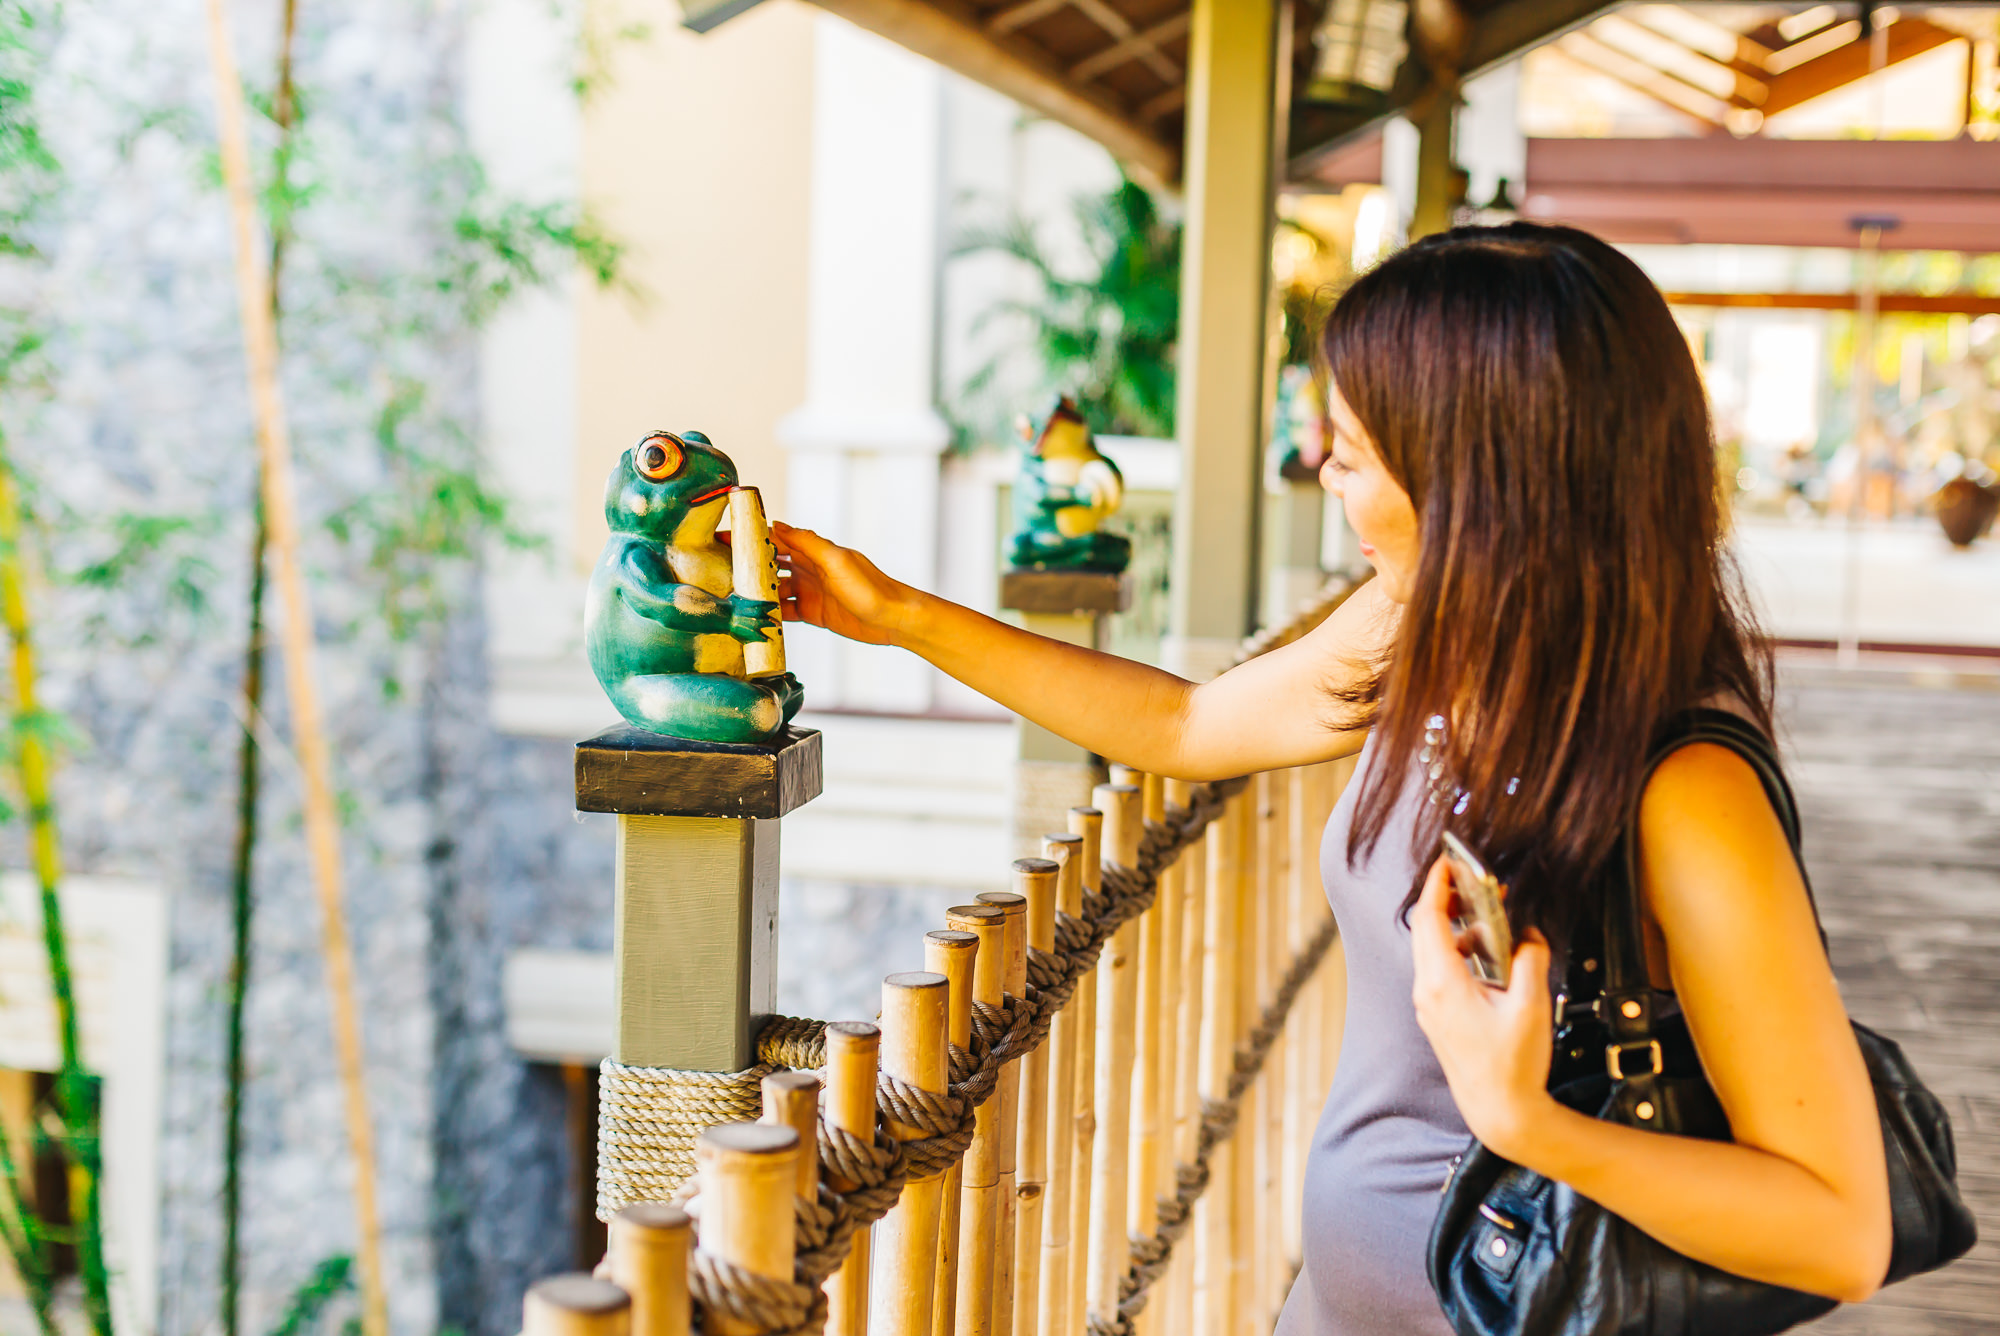 Mariko loved the frog decorations at the entrance of   Royal Pacific Resort